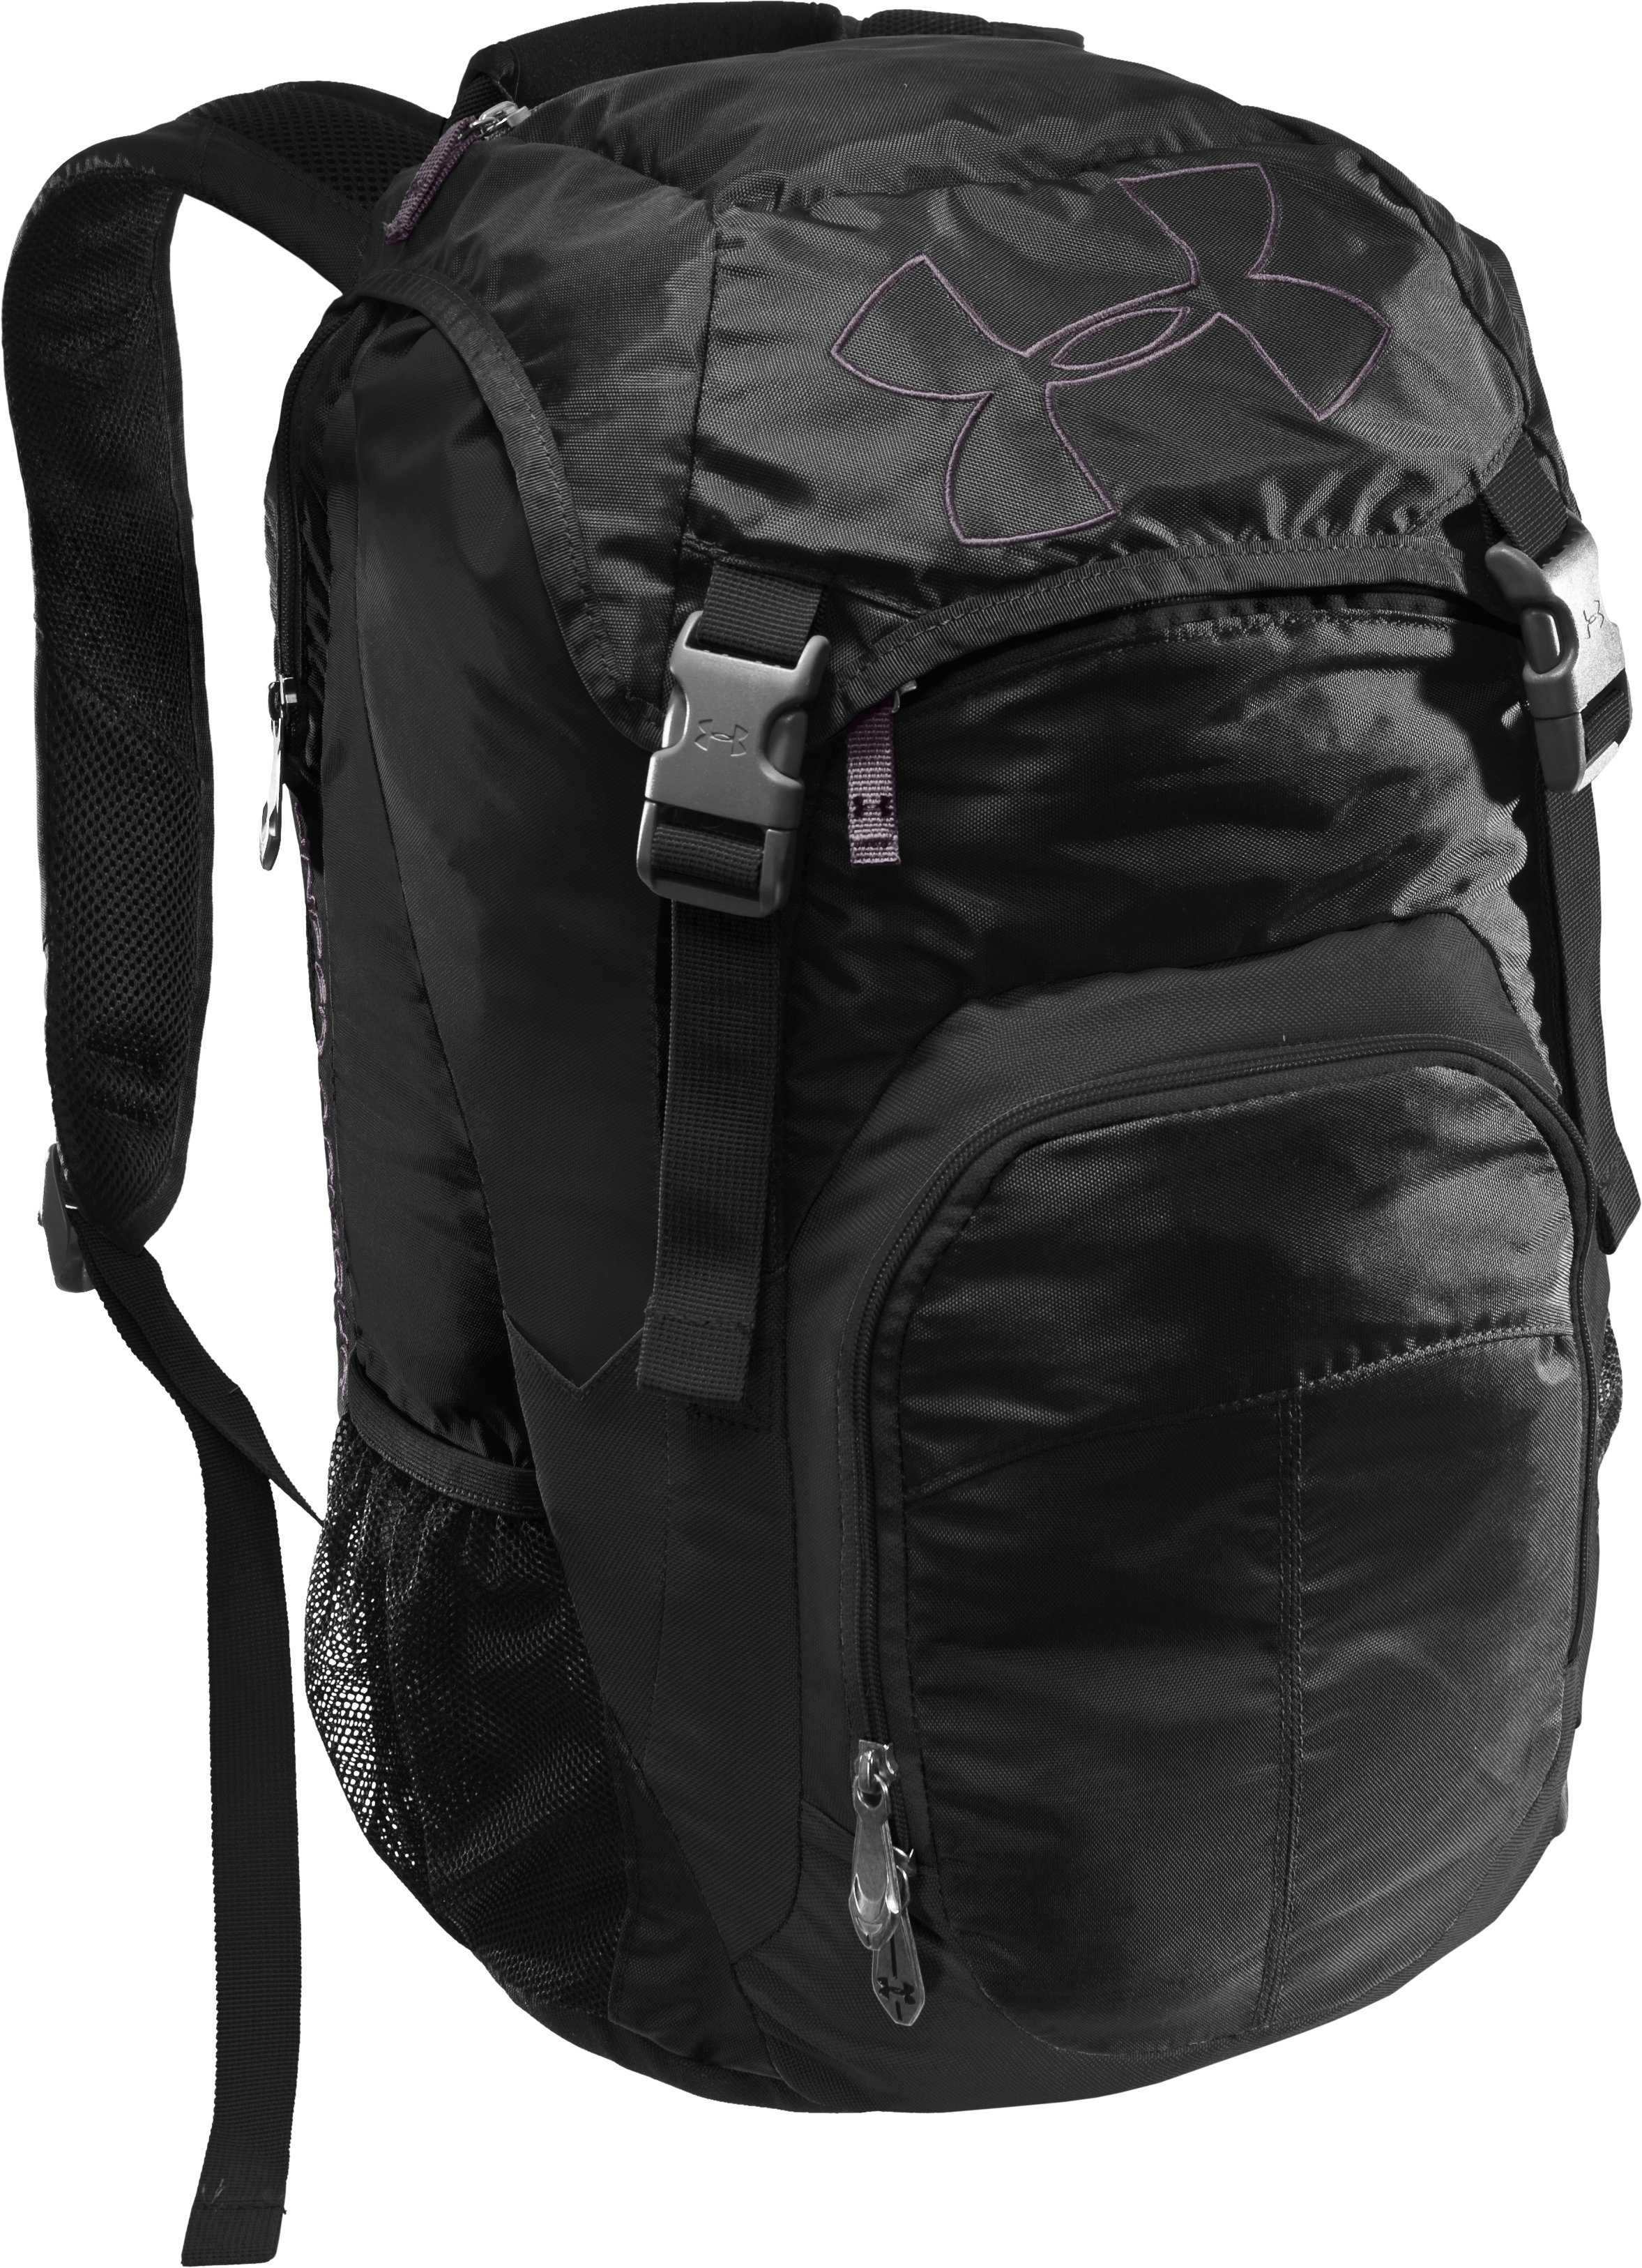 Armour Select® Backpack, Black